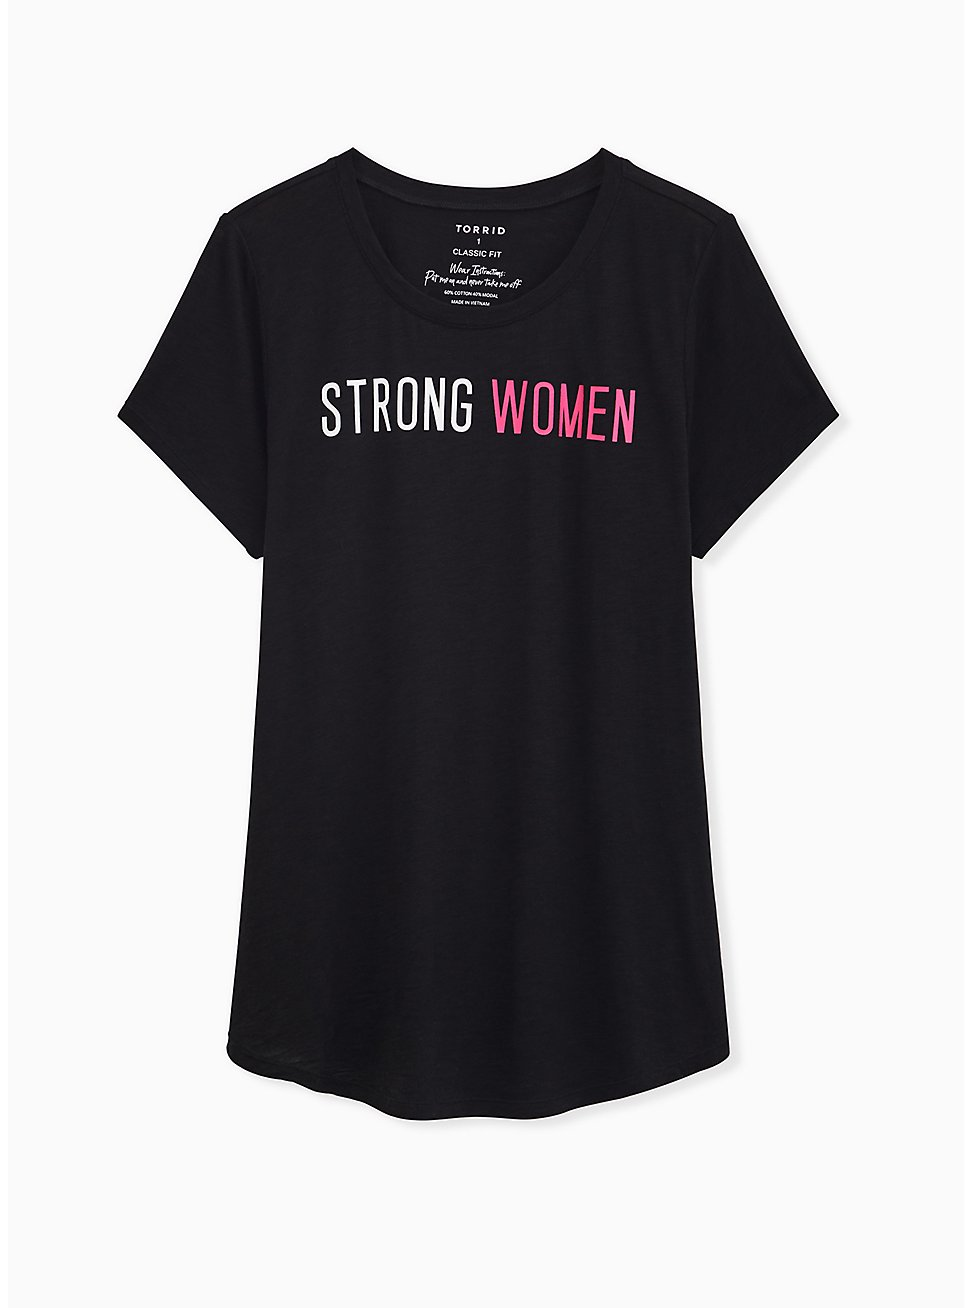 Breast Cancer Awareness - Strong Women Classic Fit Crew Neck Tee Heritage Slub Black, DEEP BLACK, hi-res